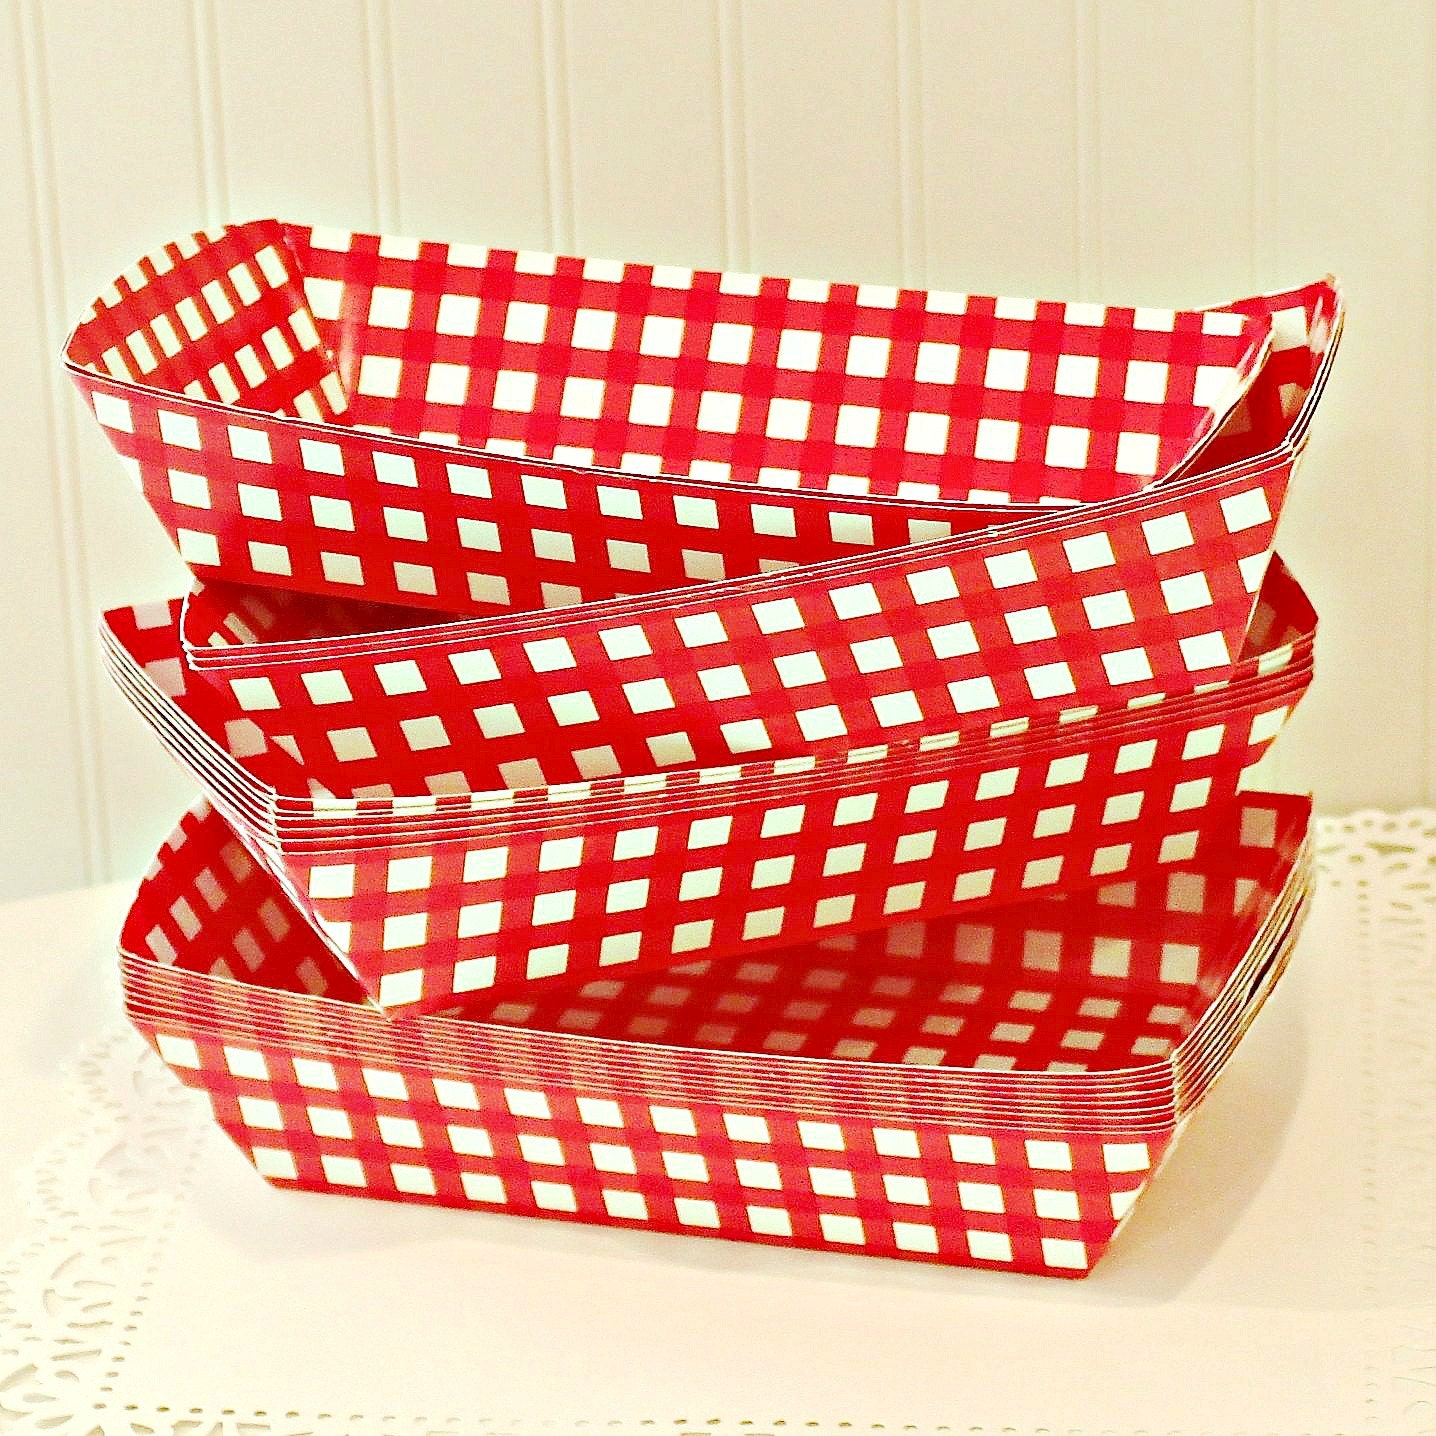 This is for a set of Food Trays. Each tray has a red & white crosshatch pattern. Hold classic delicacies like nachos, fries, tacos, hot corn dogs, cookies, kebabs, popcorn, other finger foods, or your.